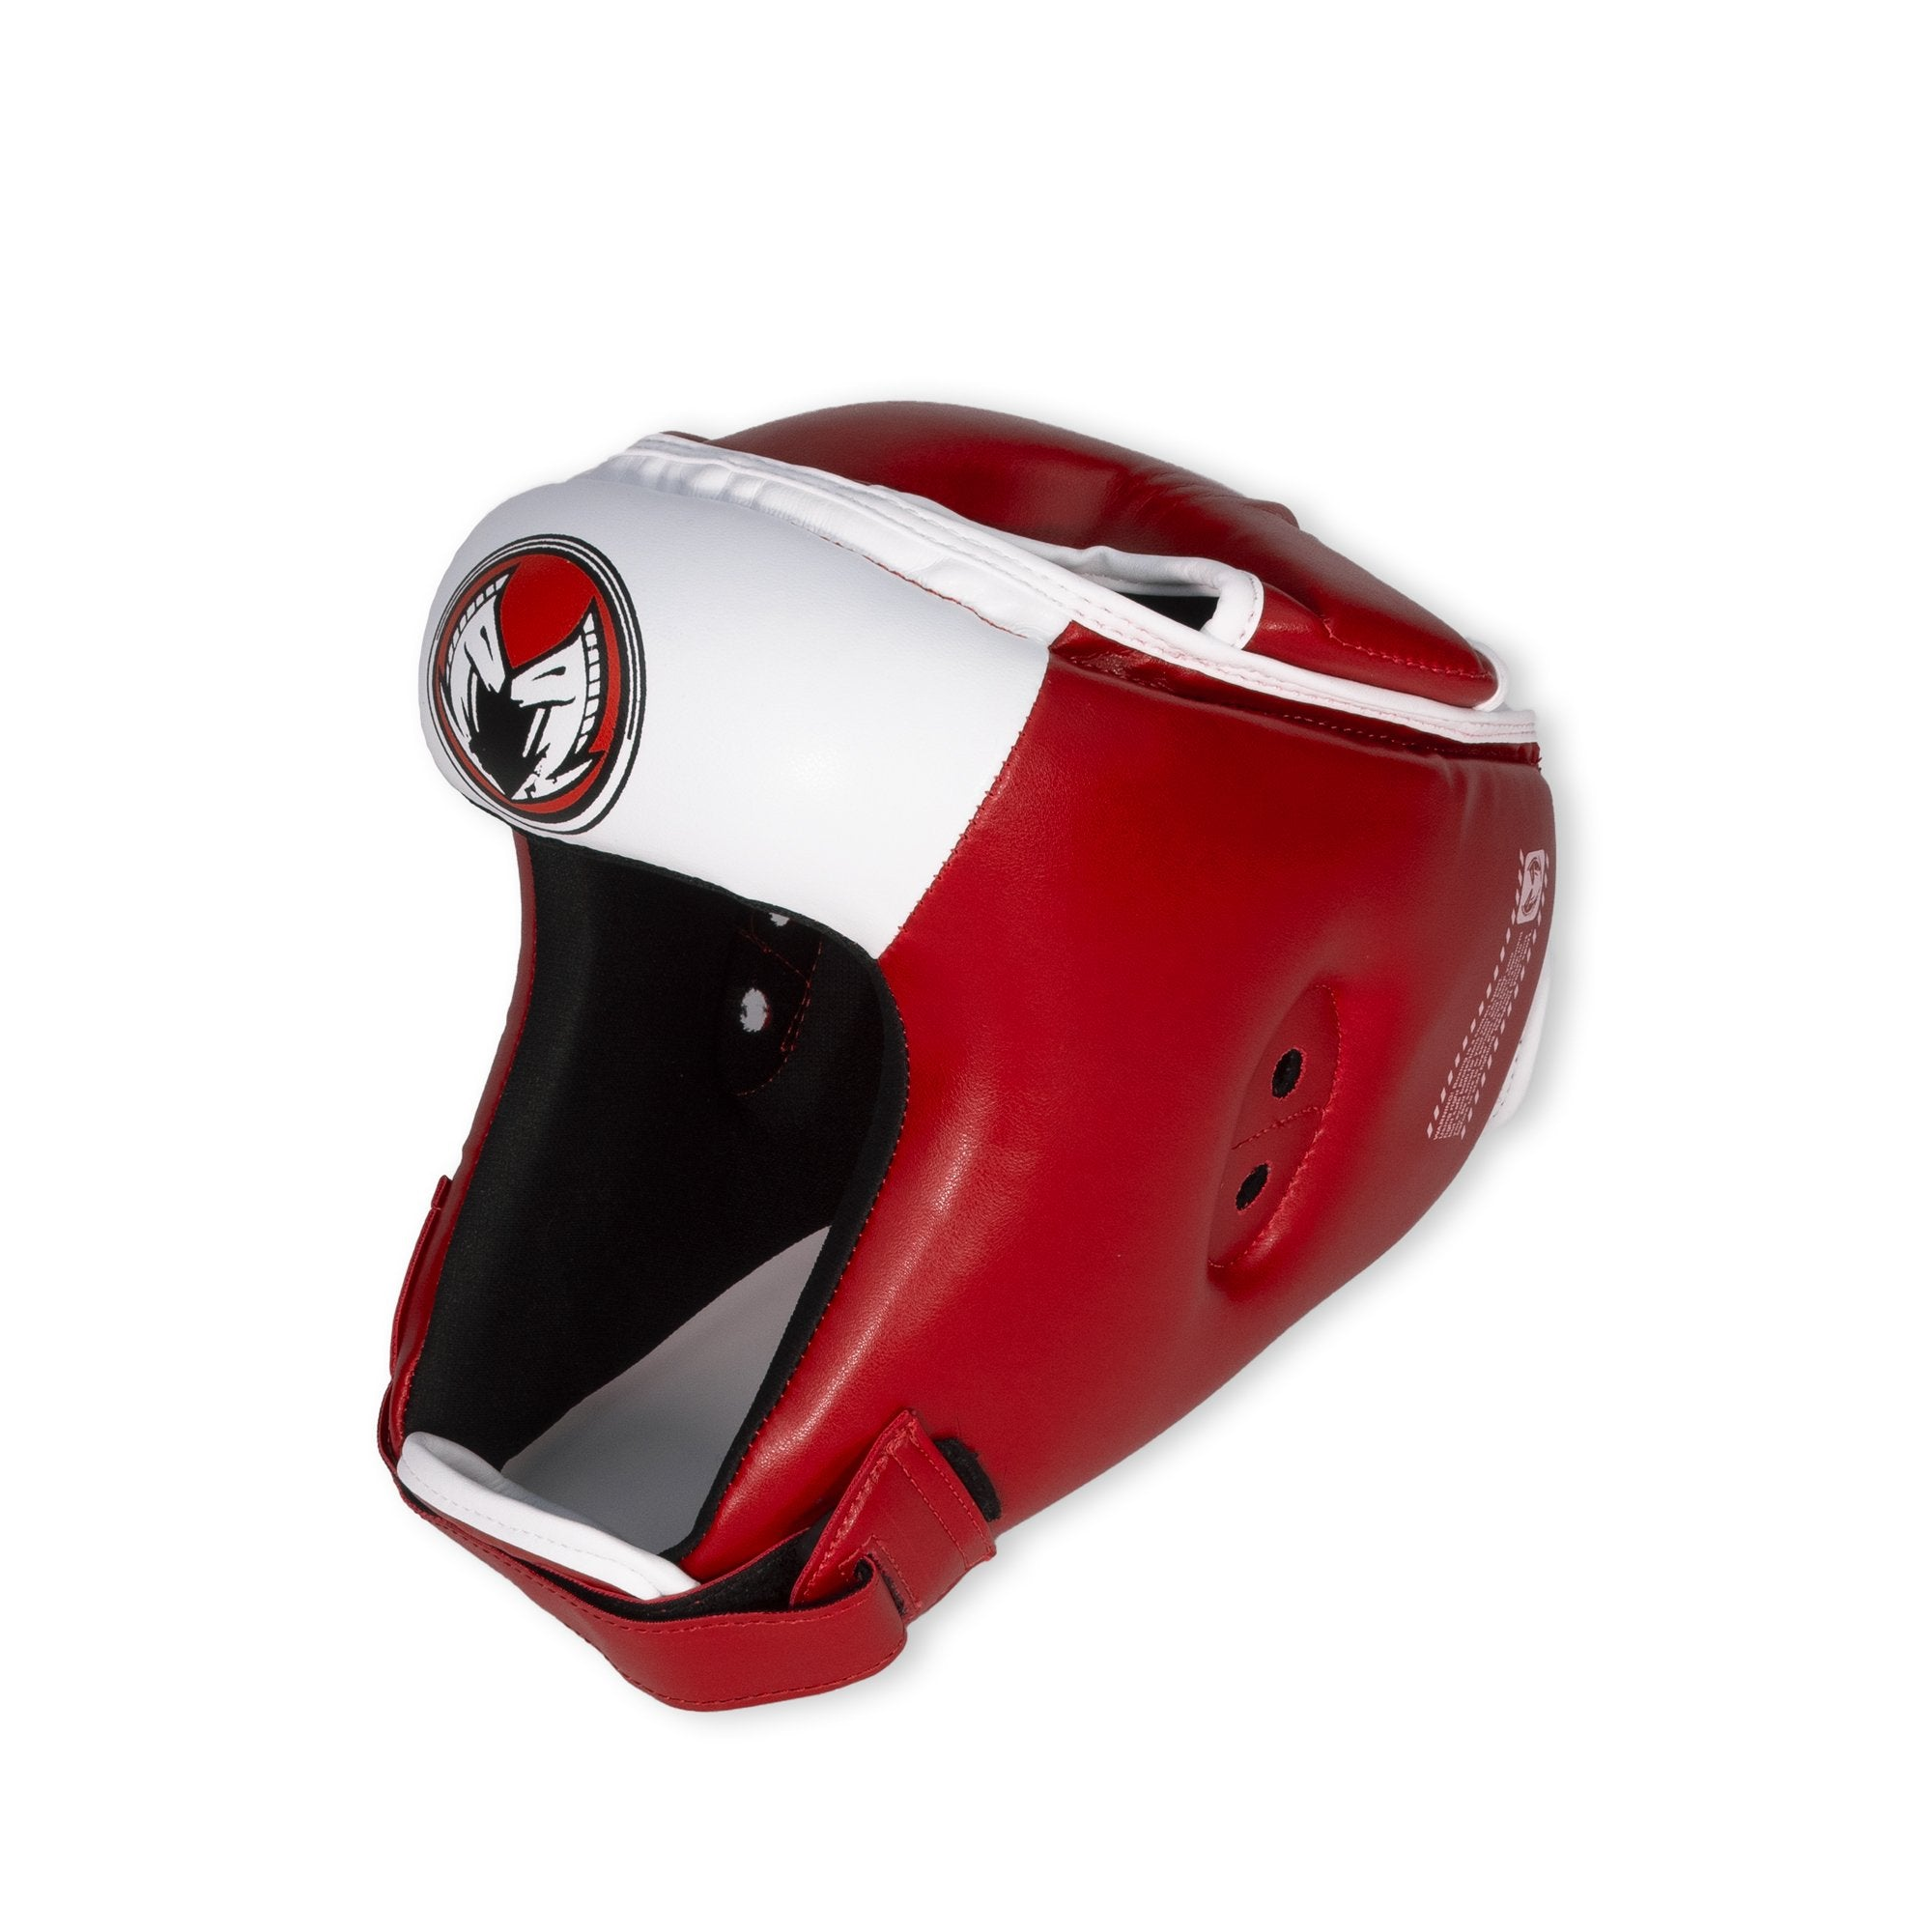 ANTIFATE R | COMPETITION HEADGEAR